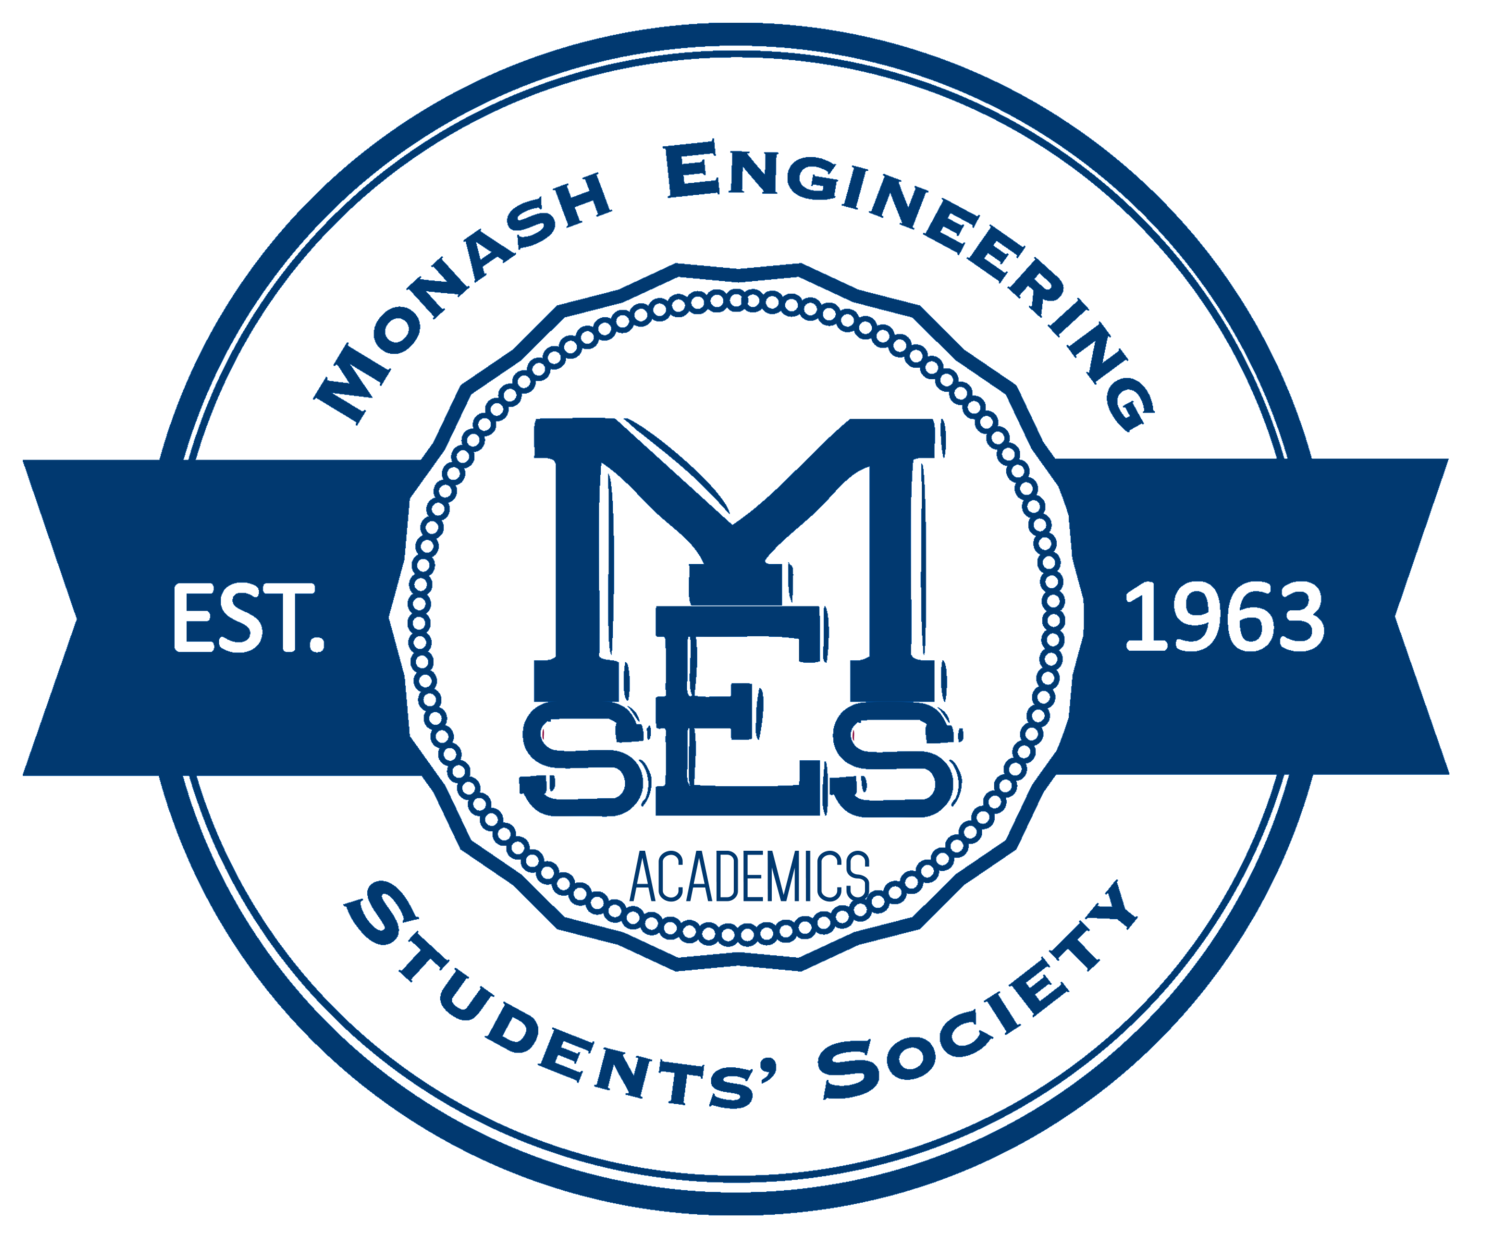 Monash Engineering Student Society